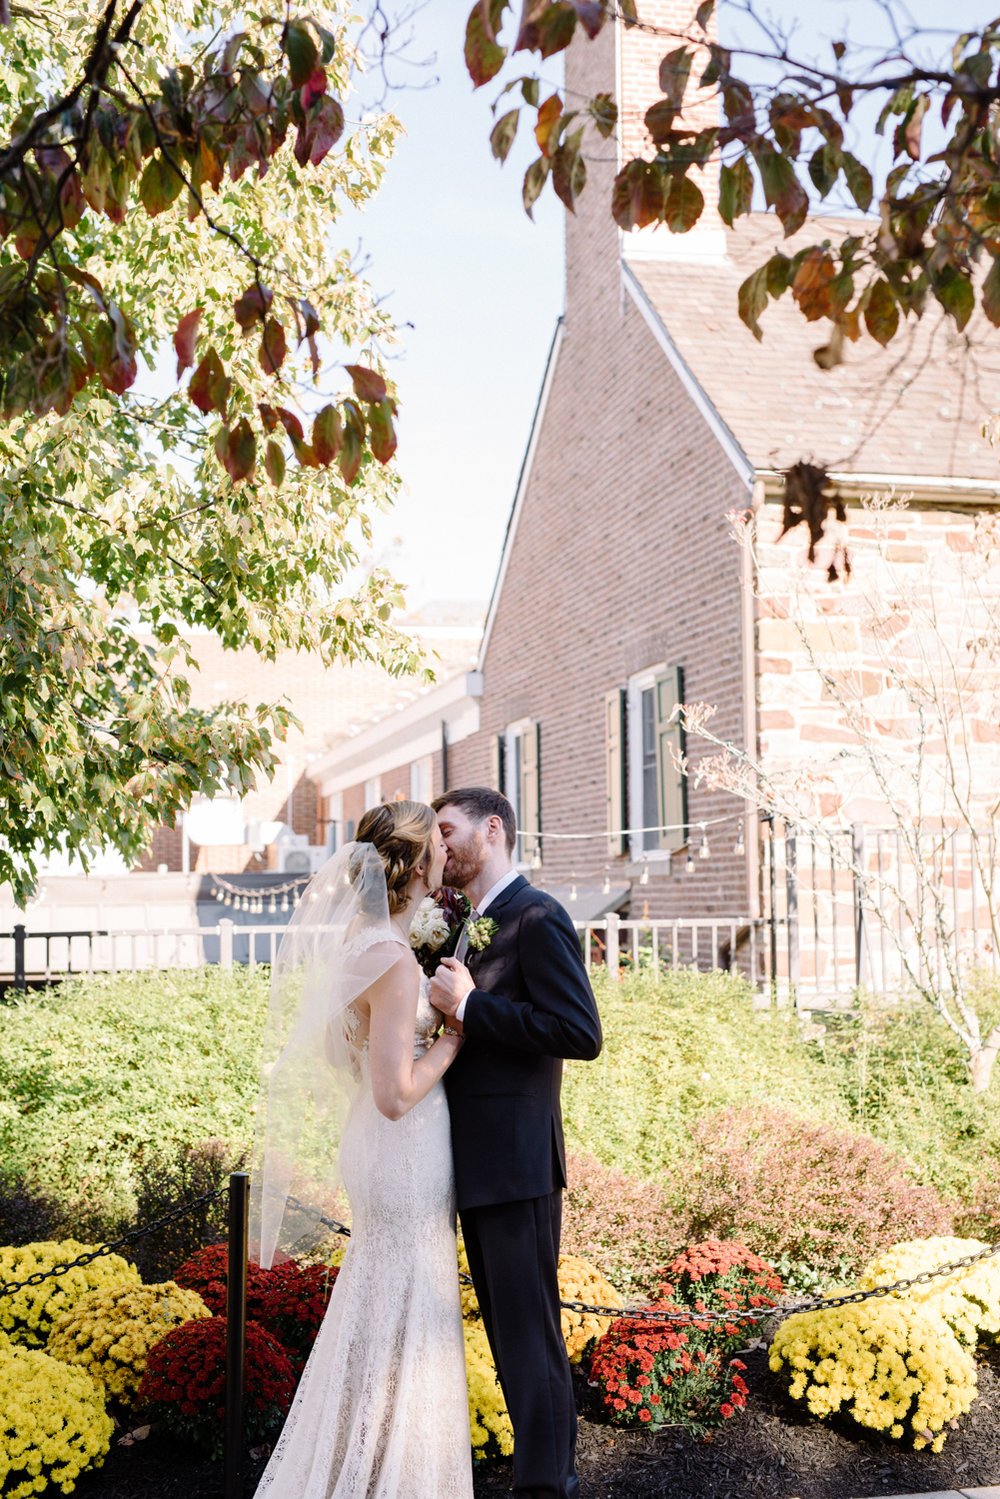 Chelsea+James- October Wedding-Triumph Brewery Princeton New Jersey- Olivia Christina Photo-105.JPG